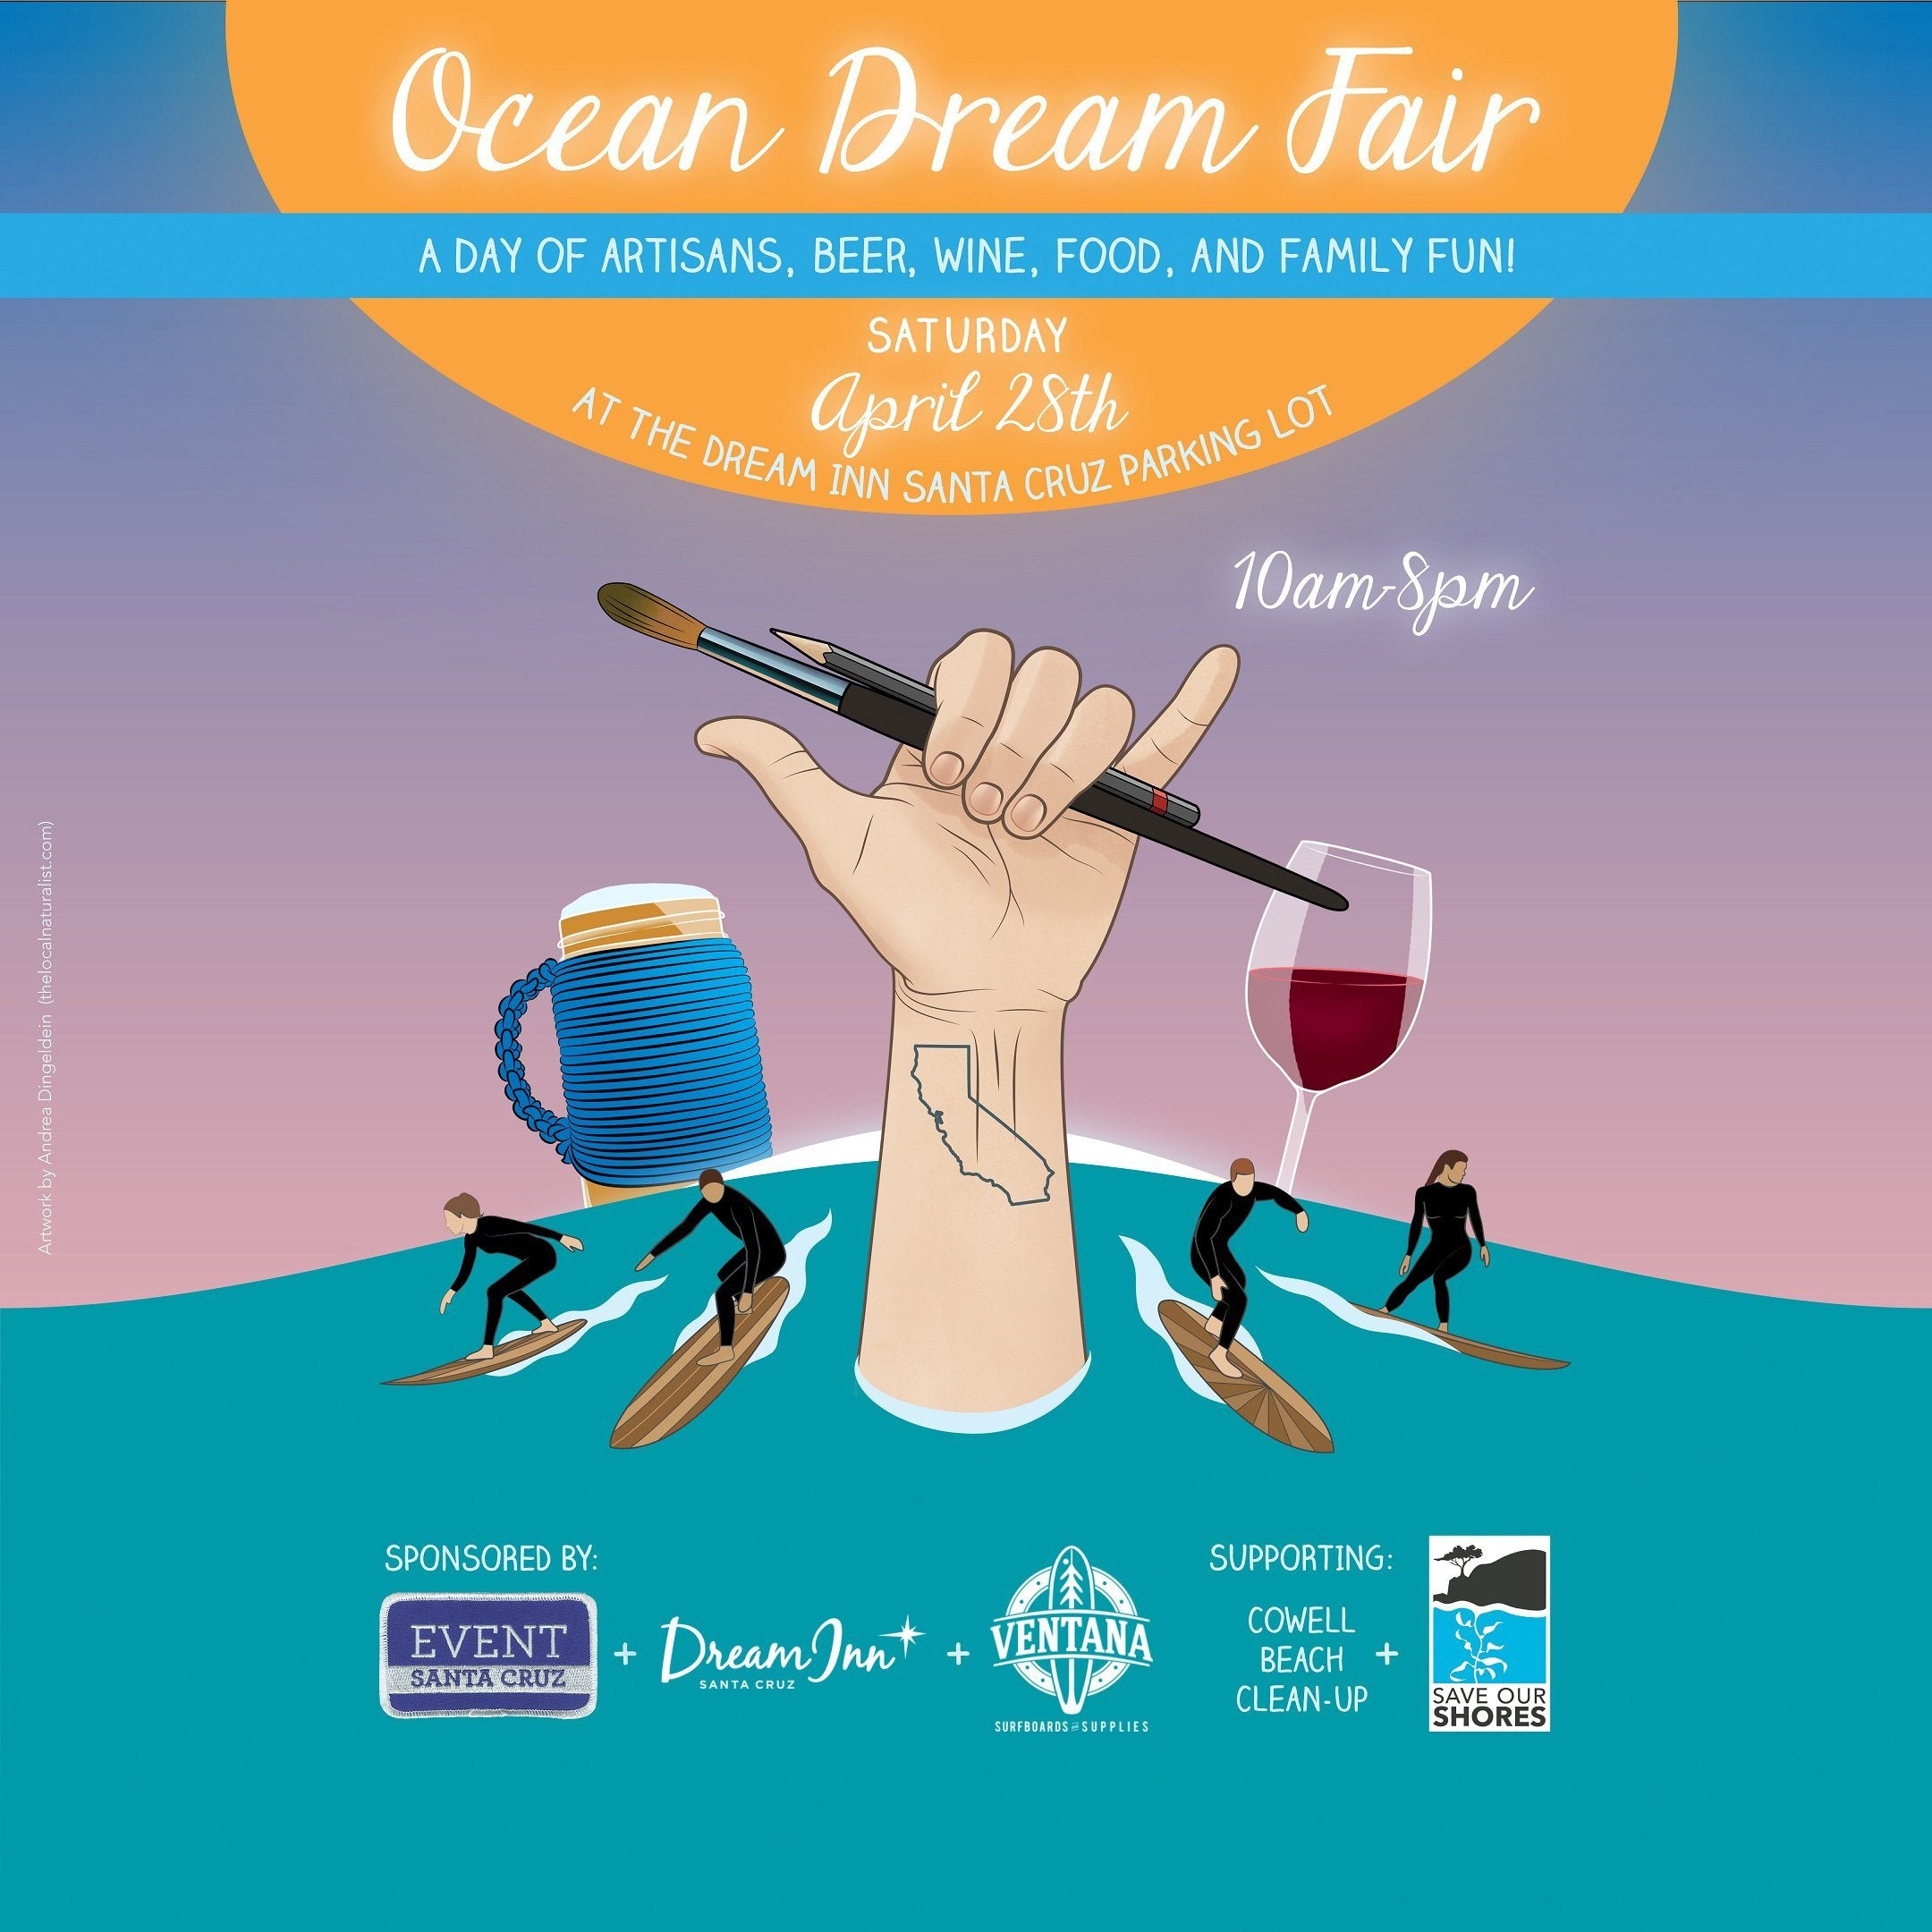 Ocean Dream Fair Vendor Fee